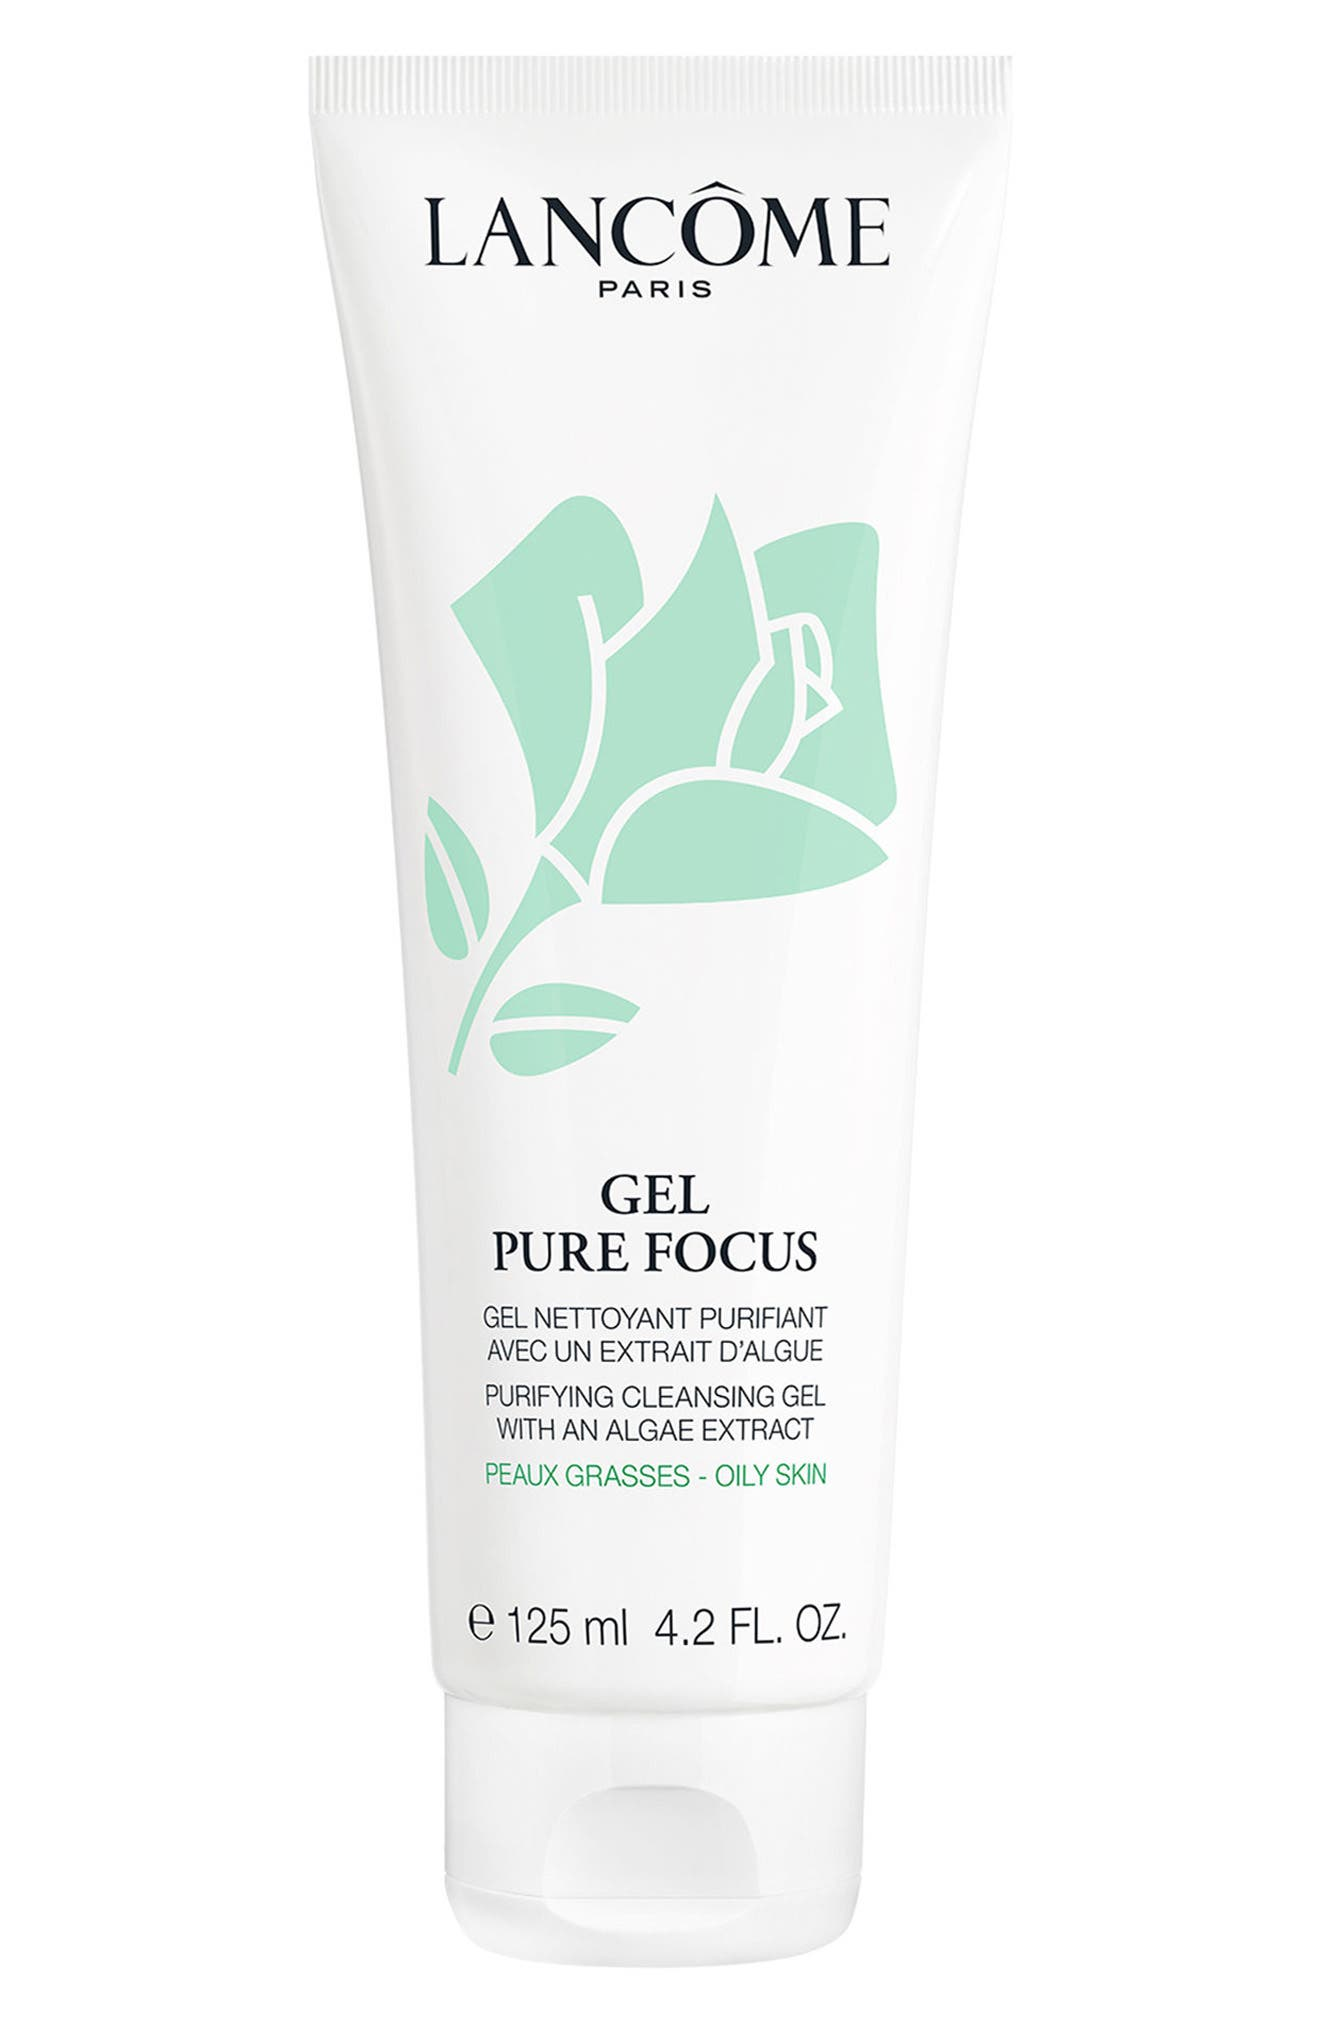 Lancôme Gel Pure Focus Deep Purifying Oily Skin Cleanser